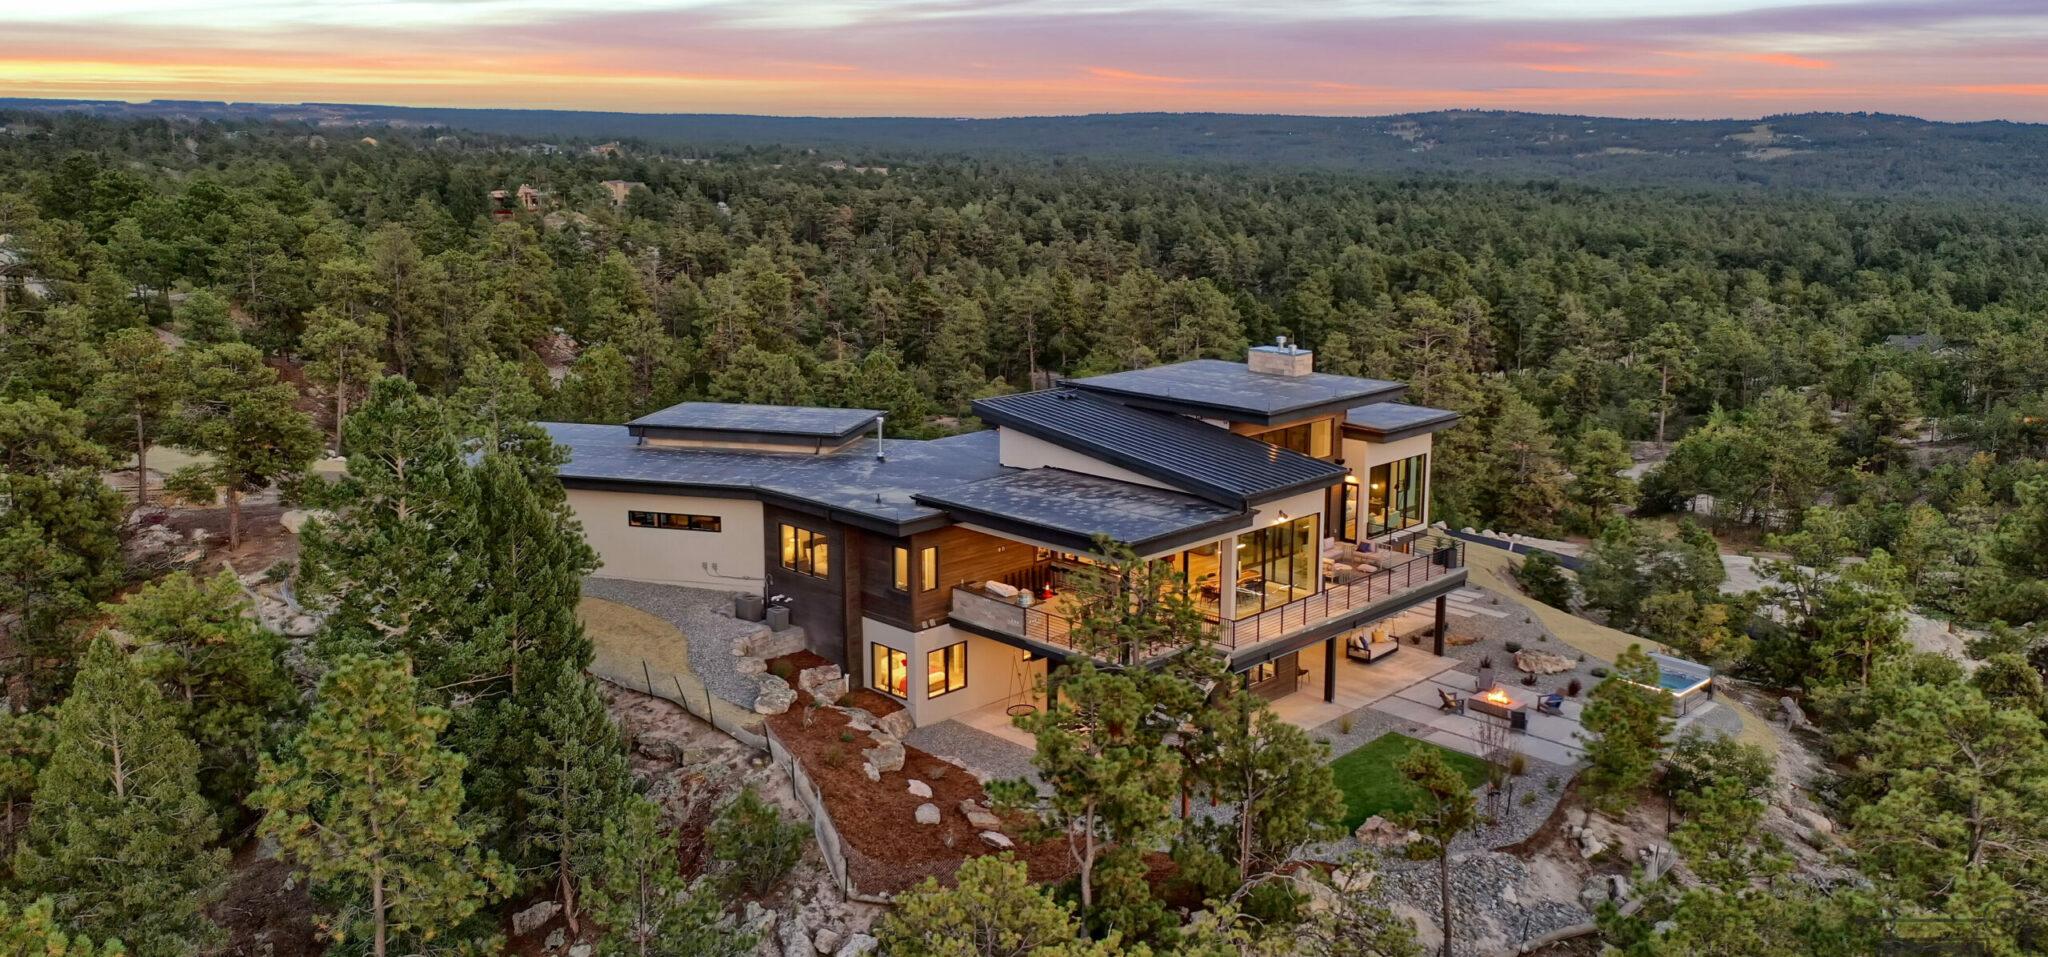 Home in the Parade of Homes